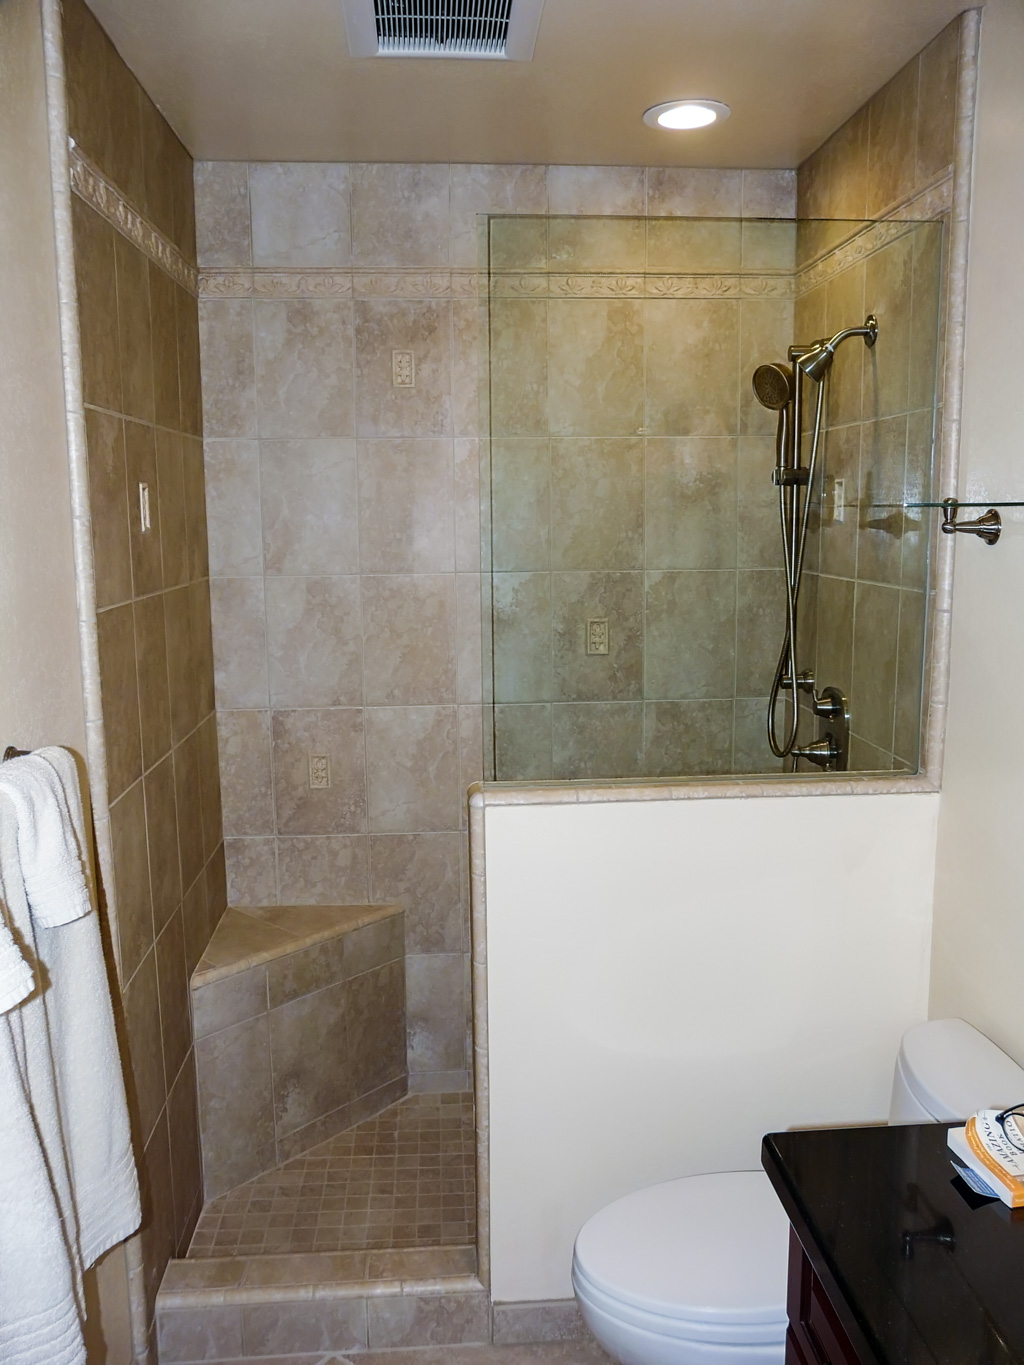 How To Finish Kitchen Cabinets Stain Combo Guest Bath/pool/powder Room - Danilo Nesovic